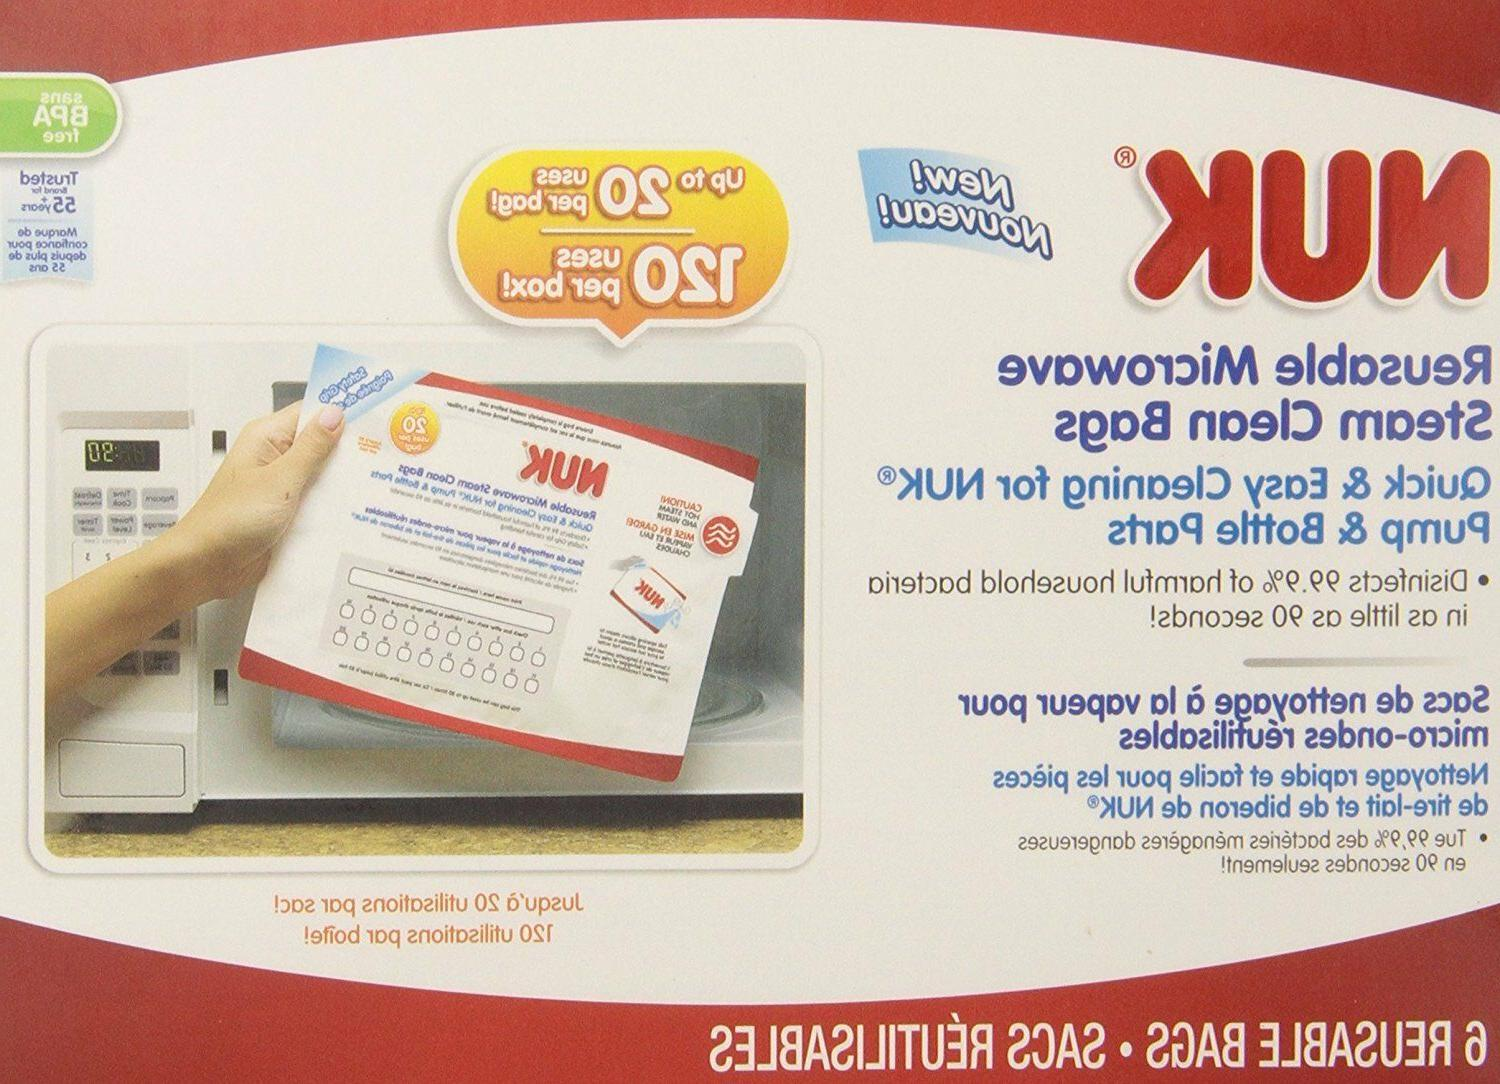 * NUK Steam Bags, Count